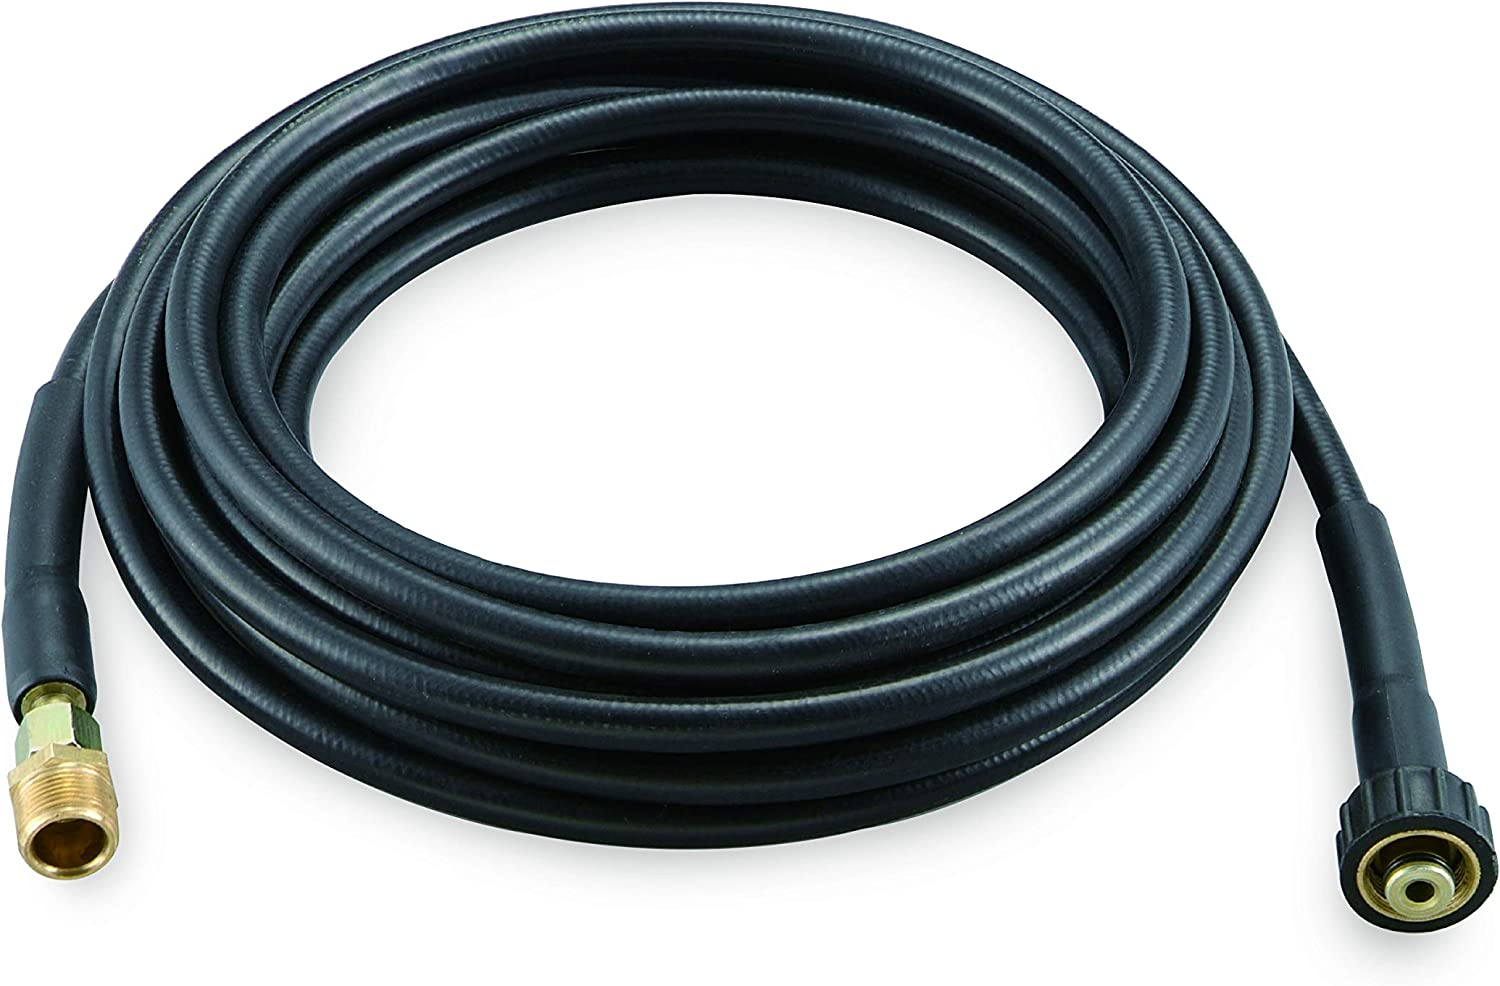 Sun Joe SPX-25H 25' Universal Pressure Washer Extension Hose for SPX Series and Others